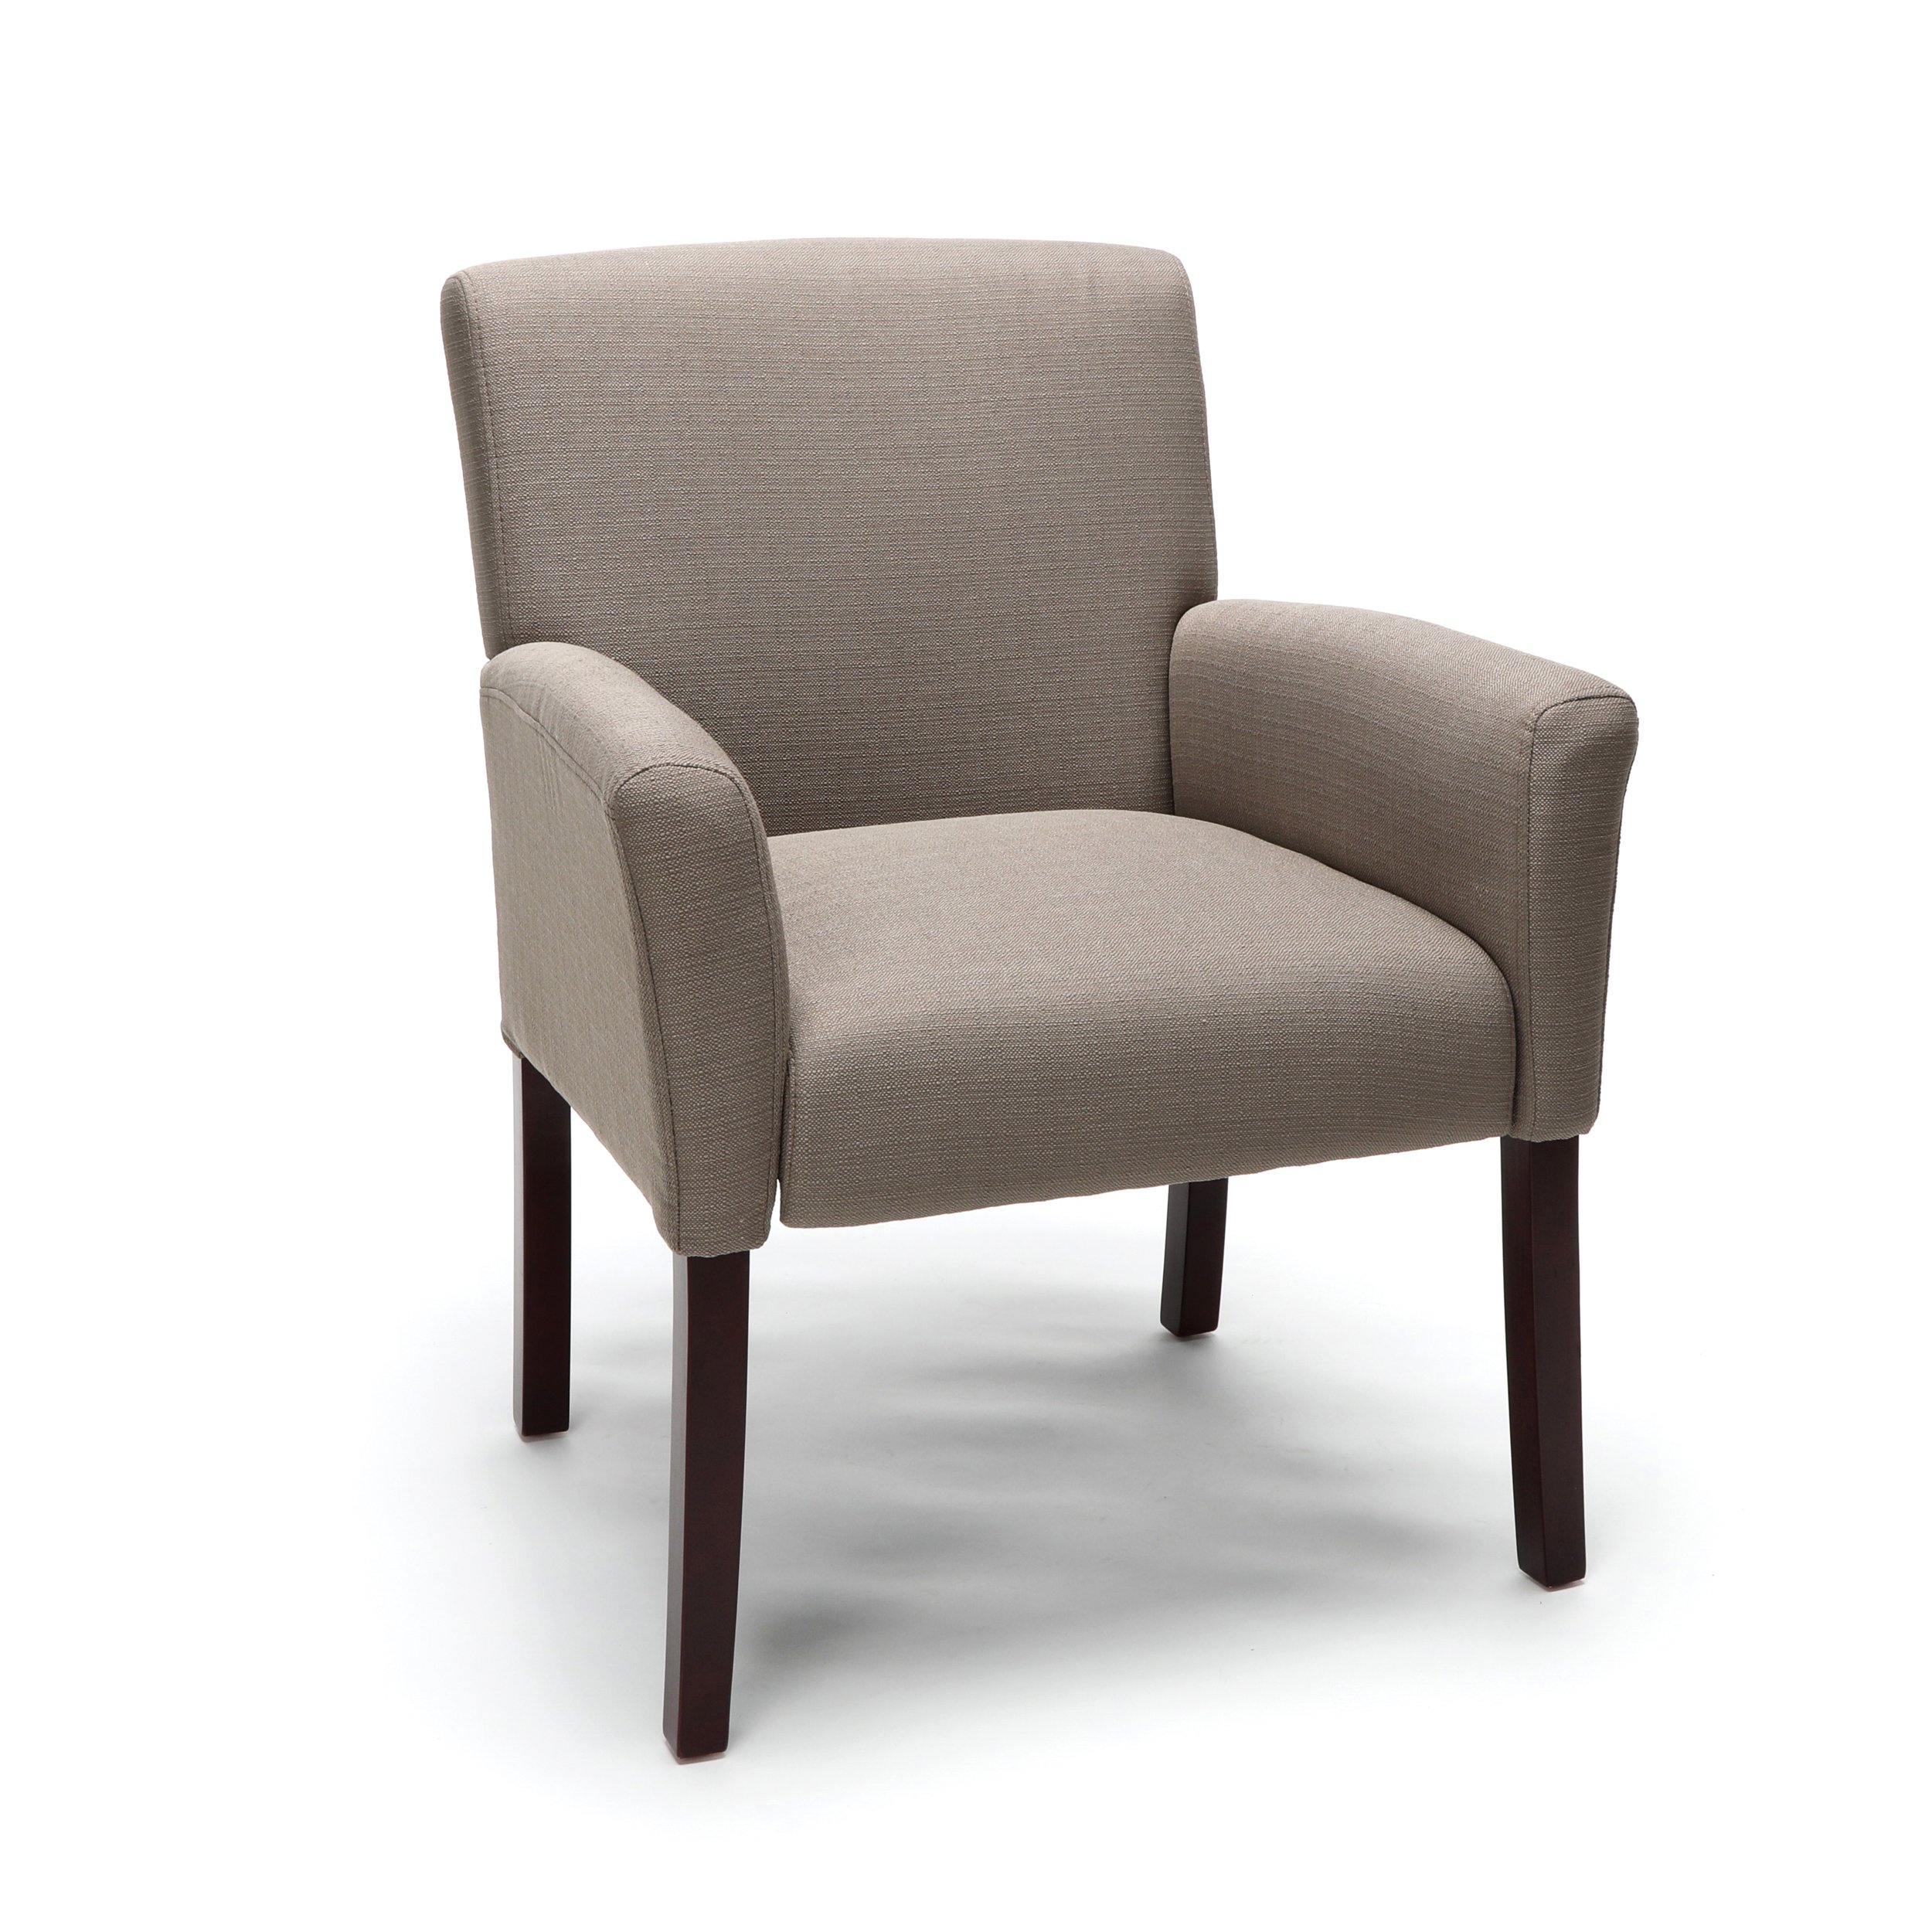 Essentials Executive Guest Chair - Upholstered Reception Chair with Arms by OFM